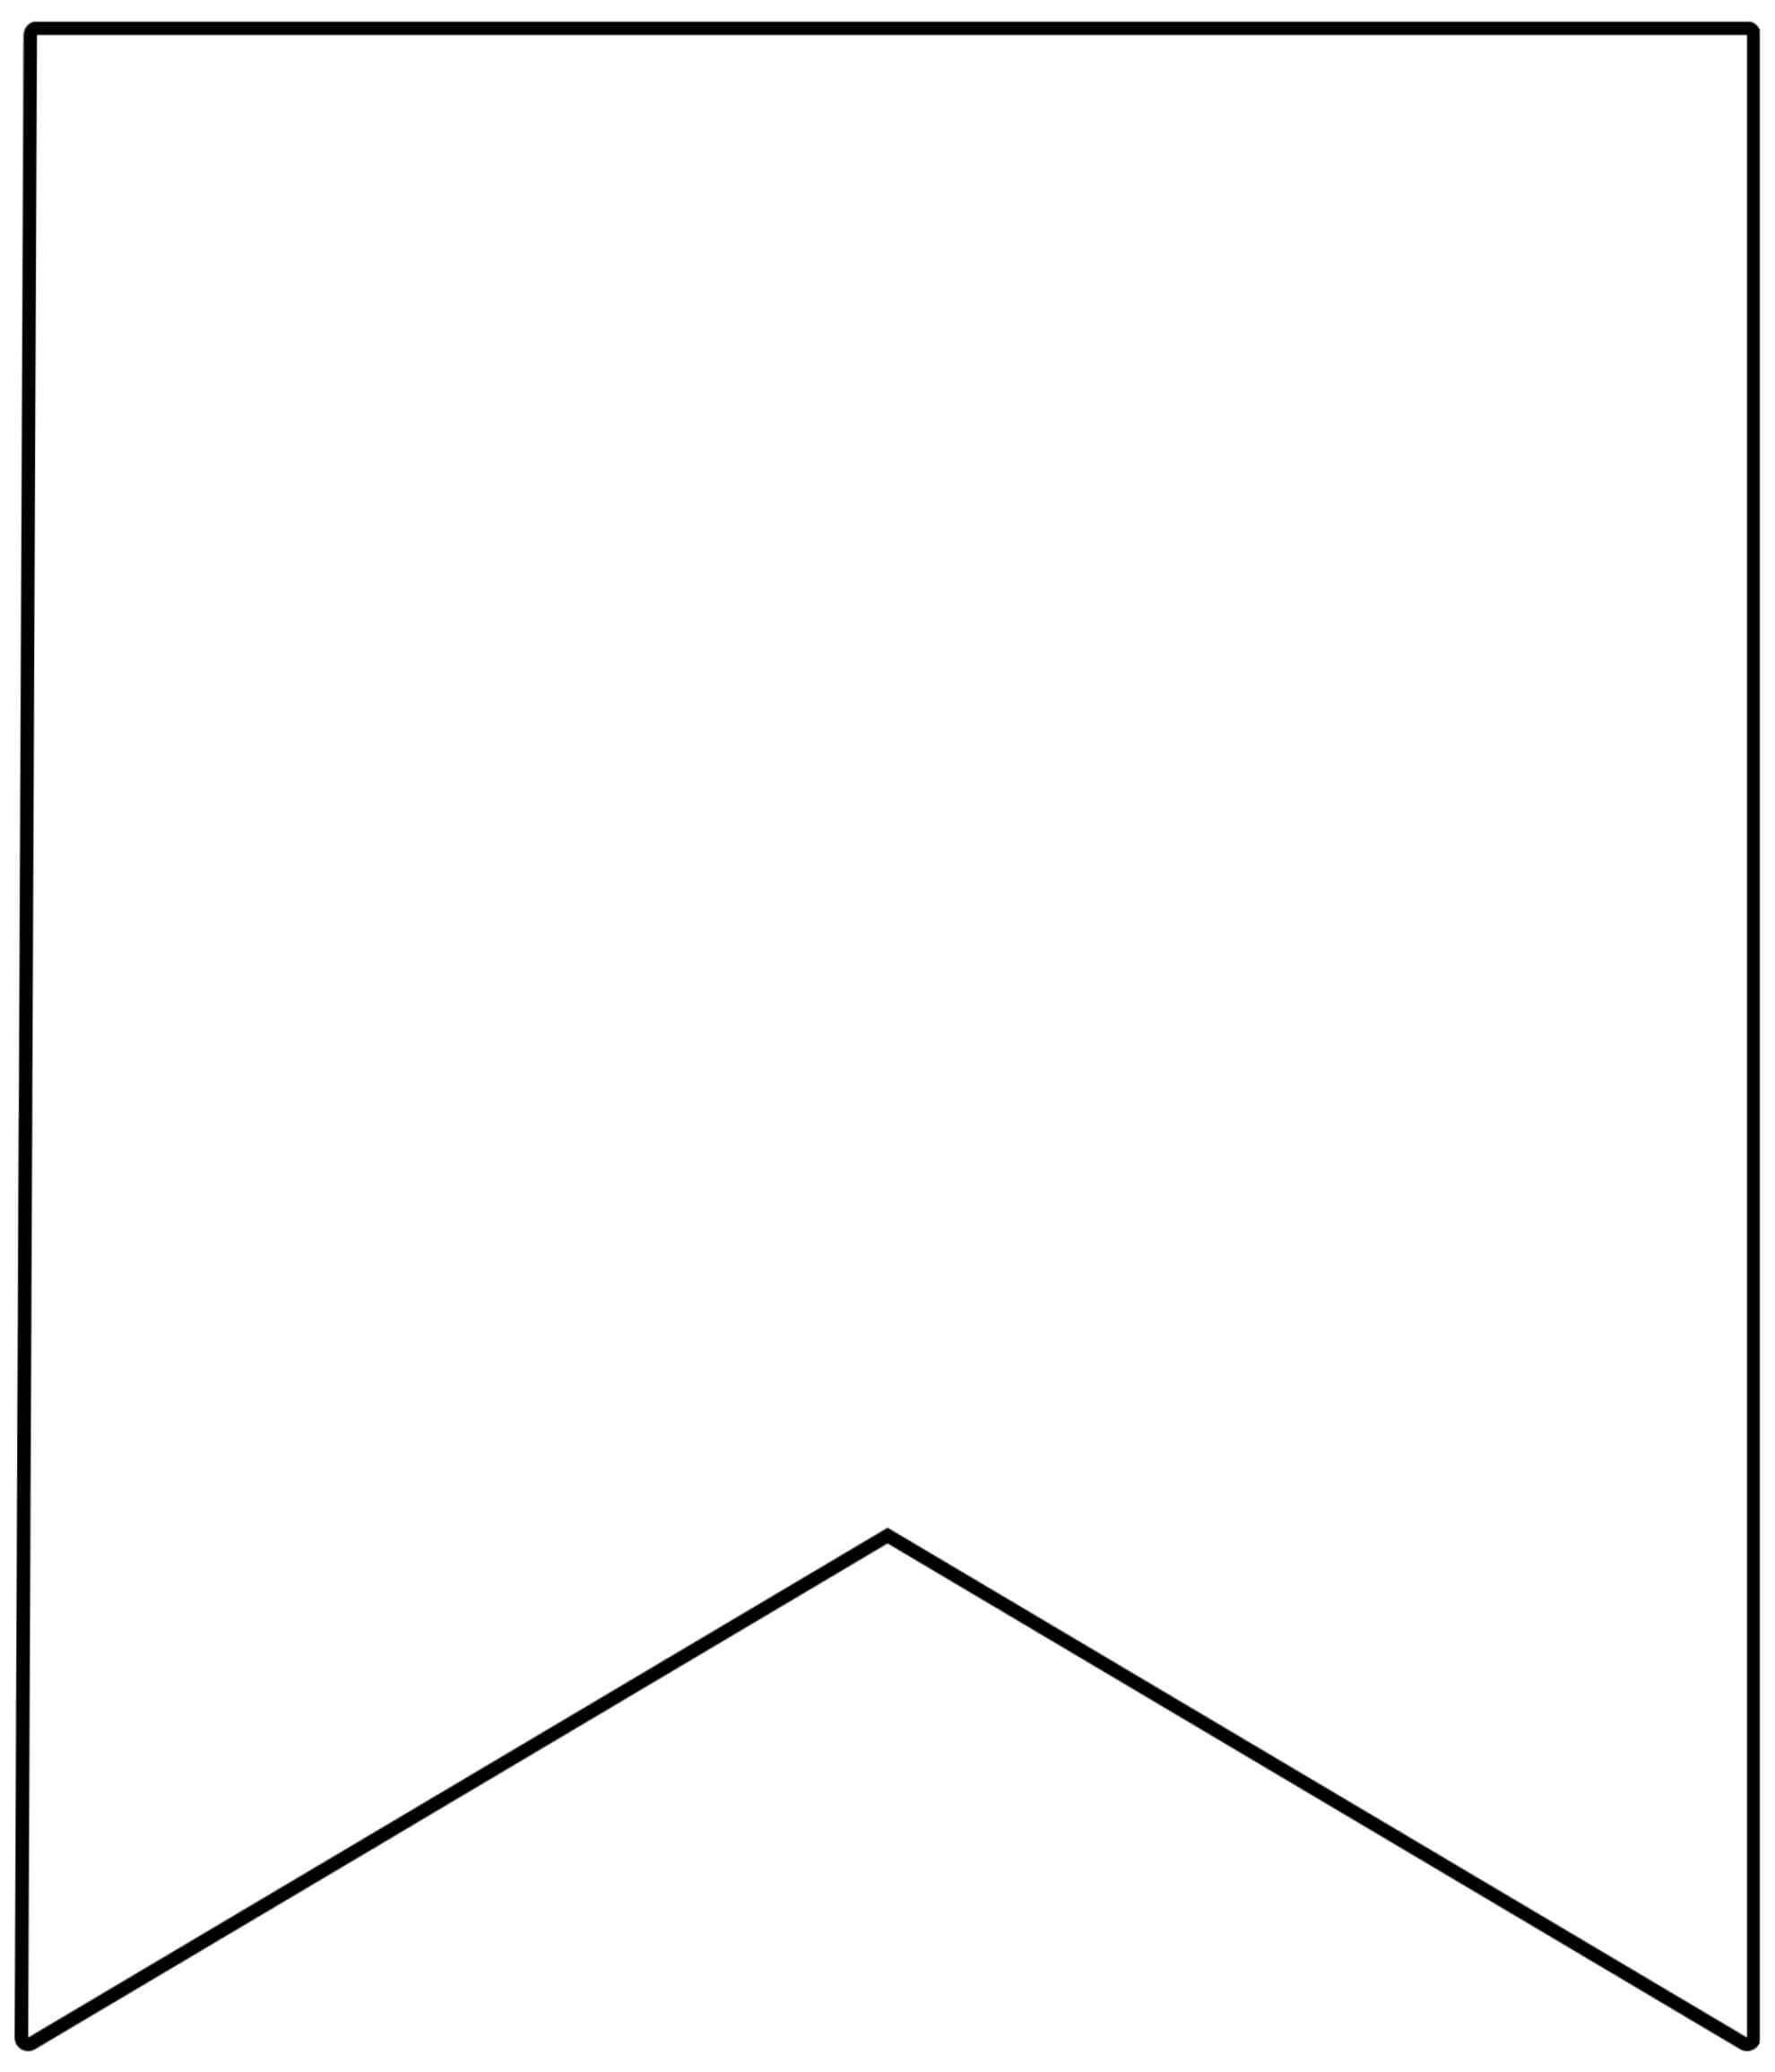 Free Printable Banner Templates {Blank Banners} - Paper Pertaining To Homemade Banner Template